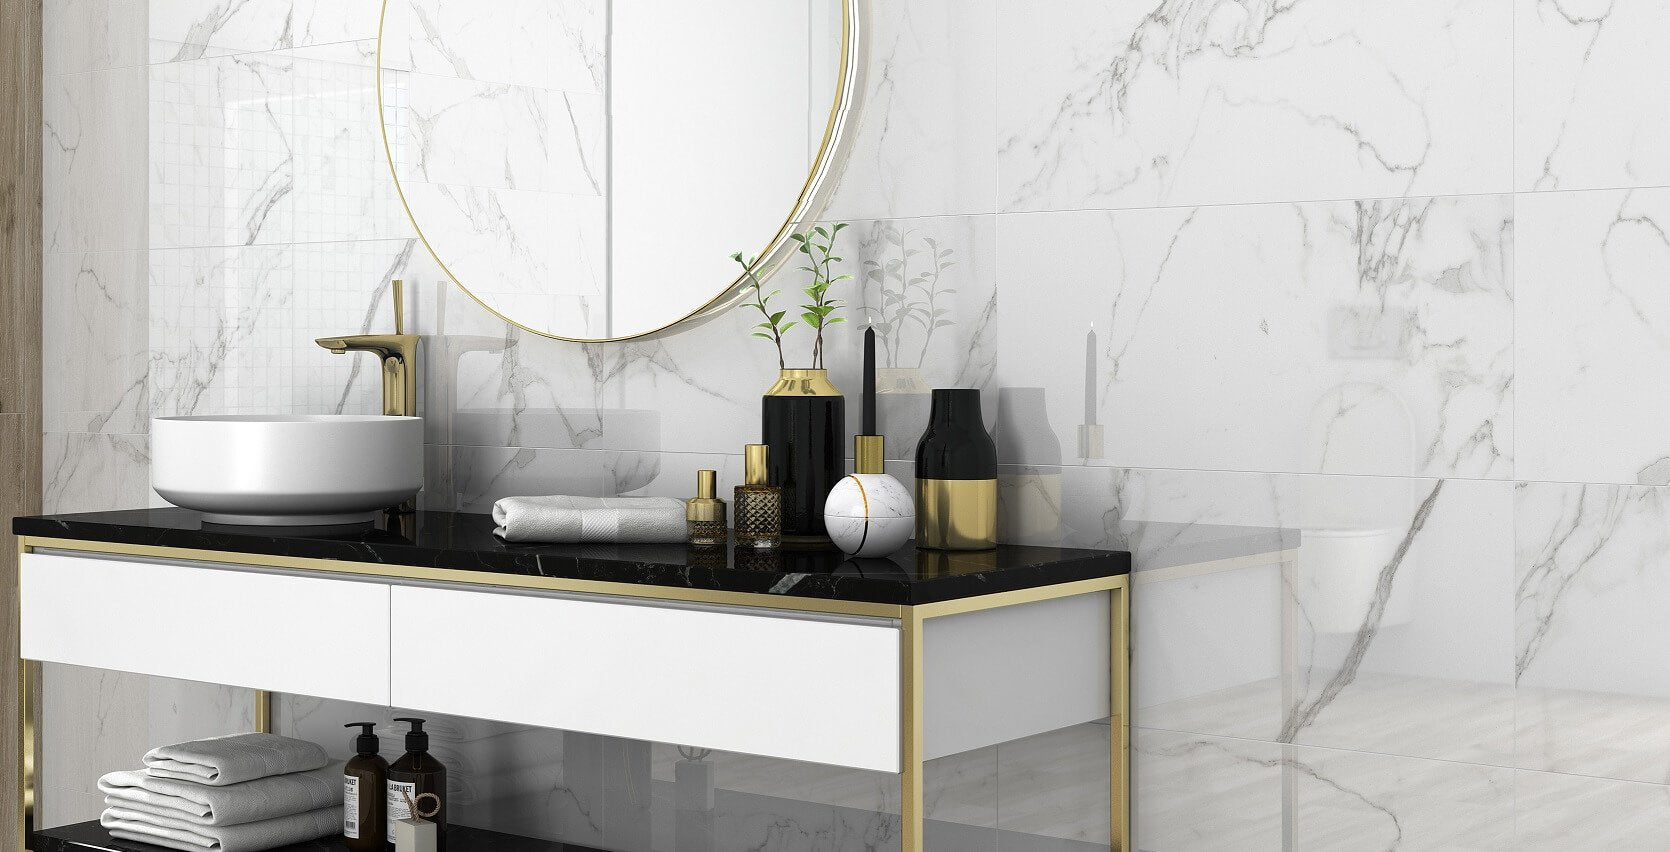 White Marble Effect Porcelain Bathroom Tiles - Stunning Beauty